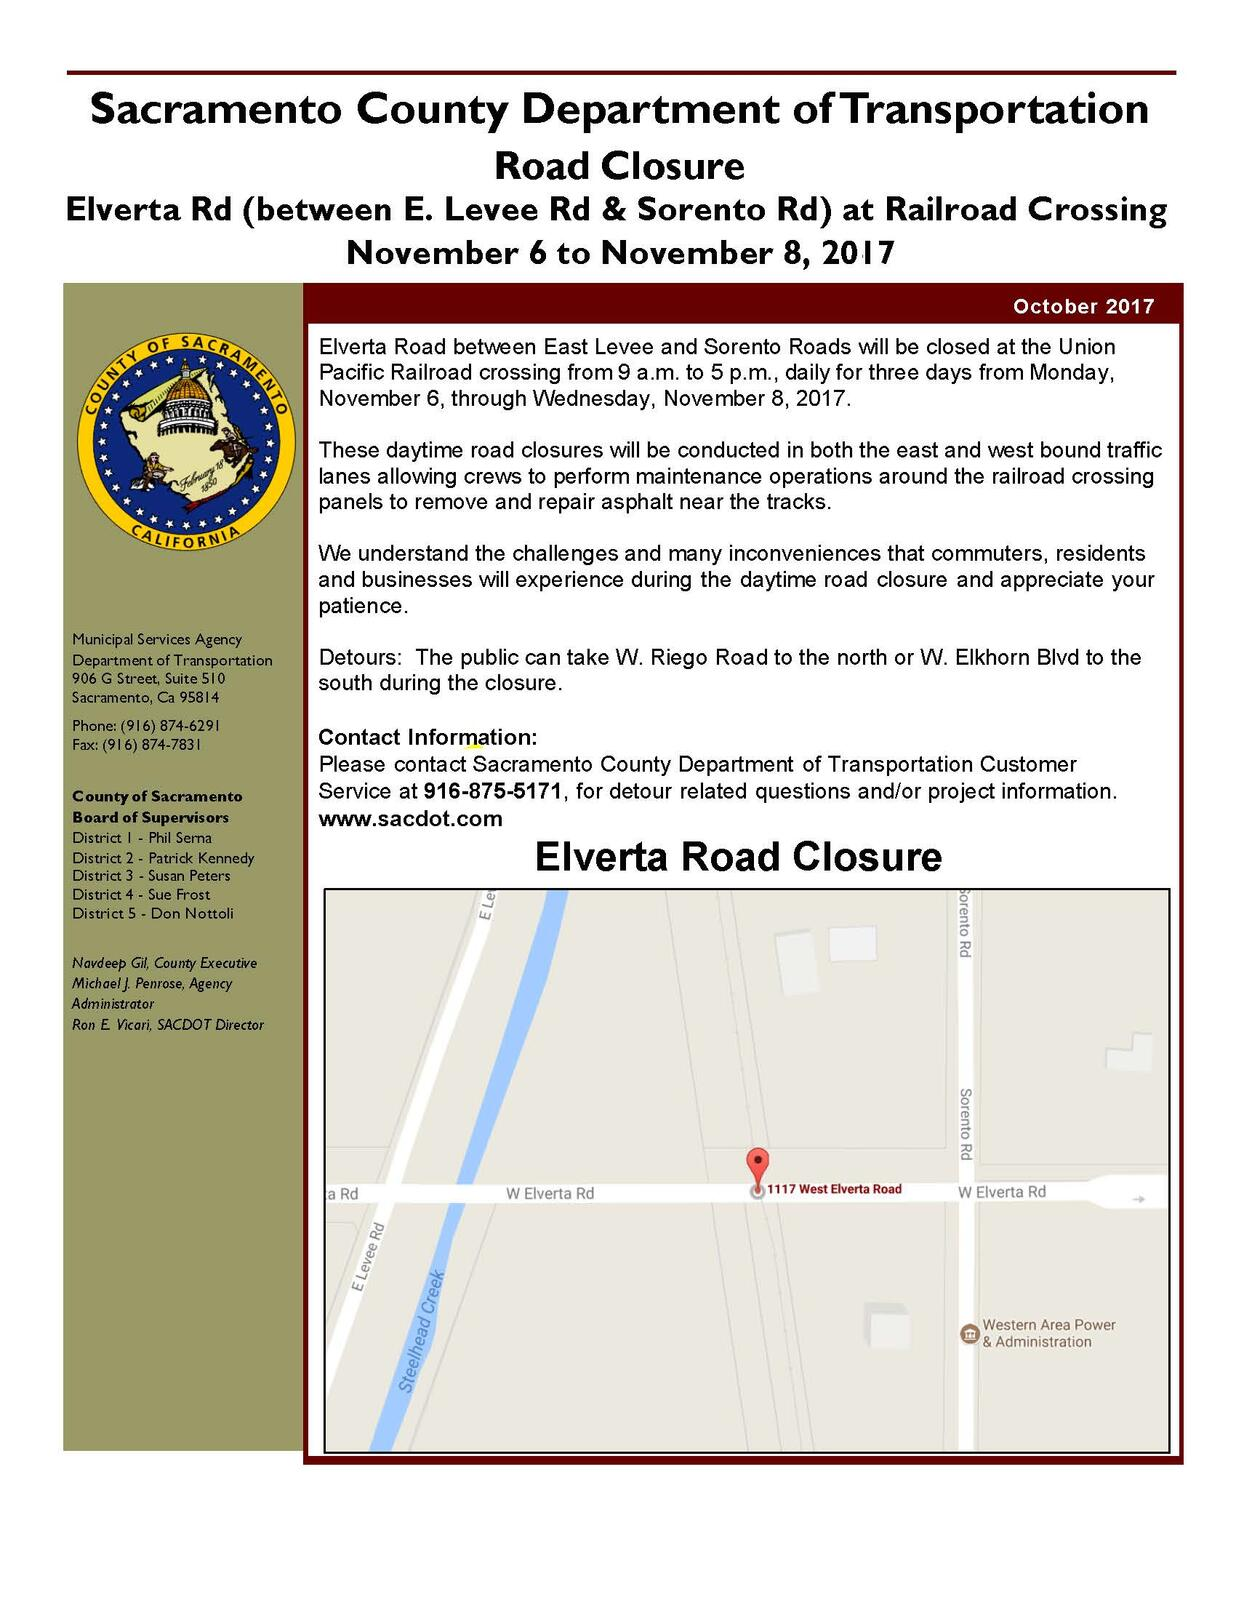 Road Closure Notification Elverta Between East Levee Road And